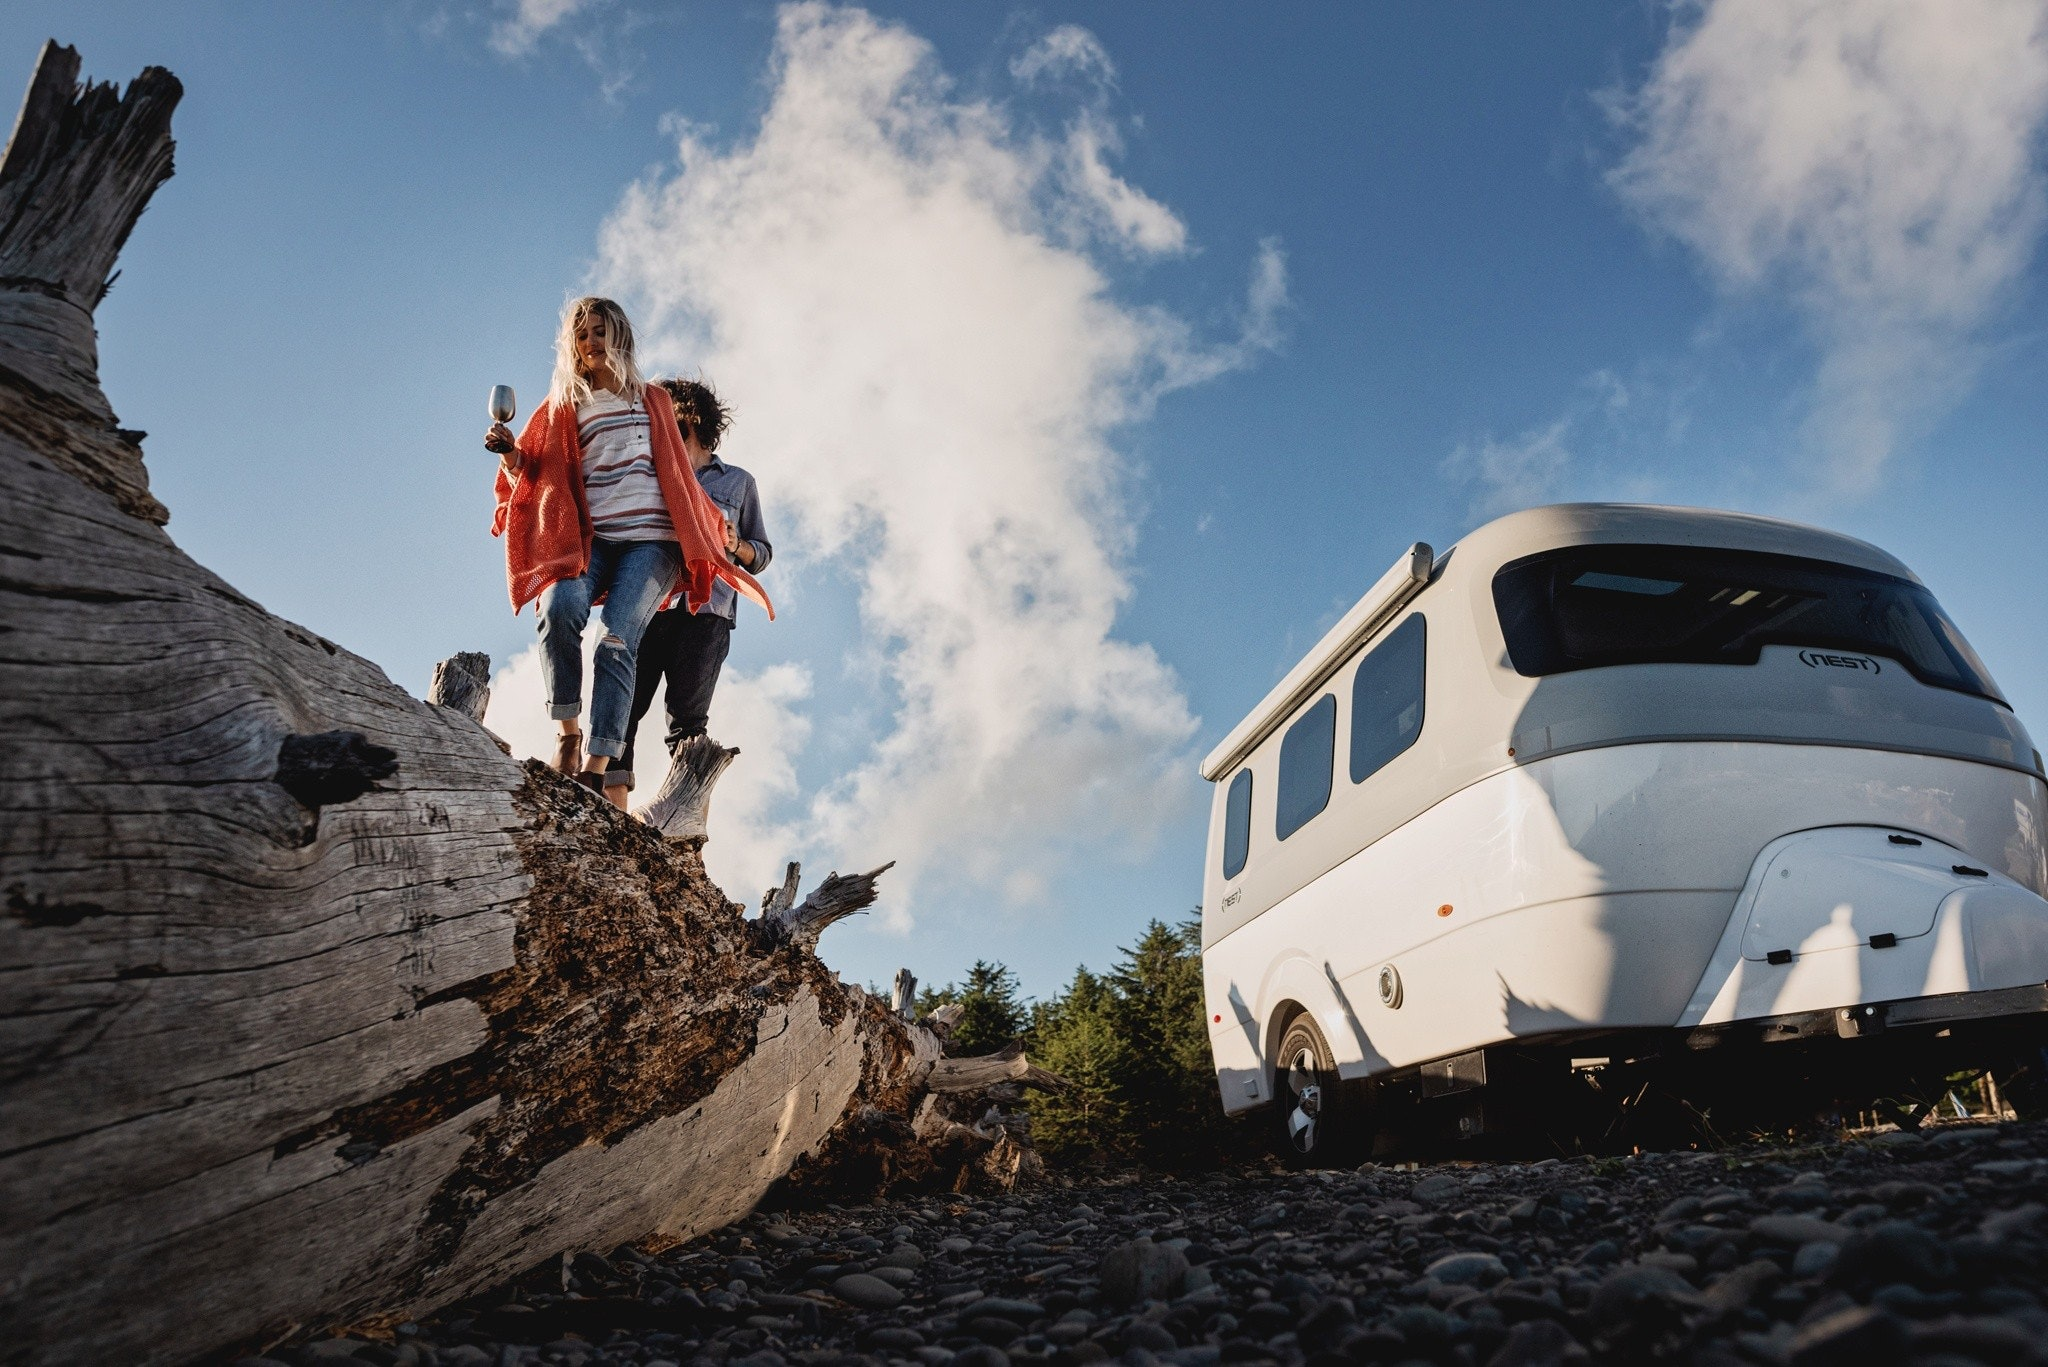 Nest by Airstream sky clouds woman man tree rocks adventure wheels shell awning